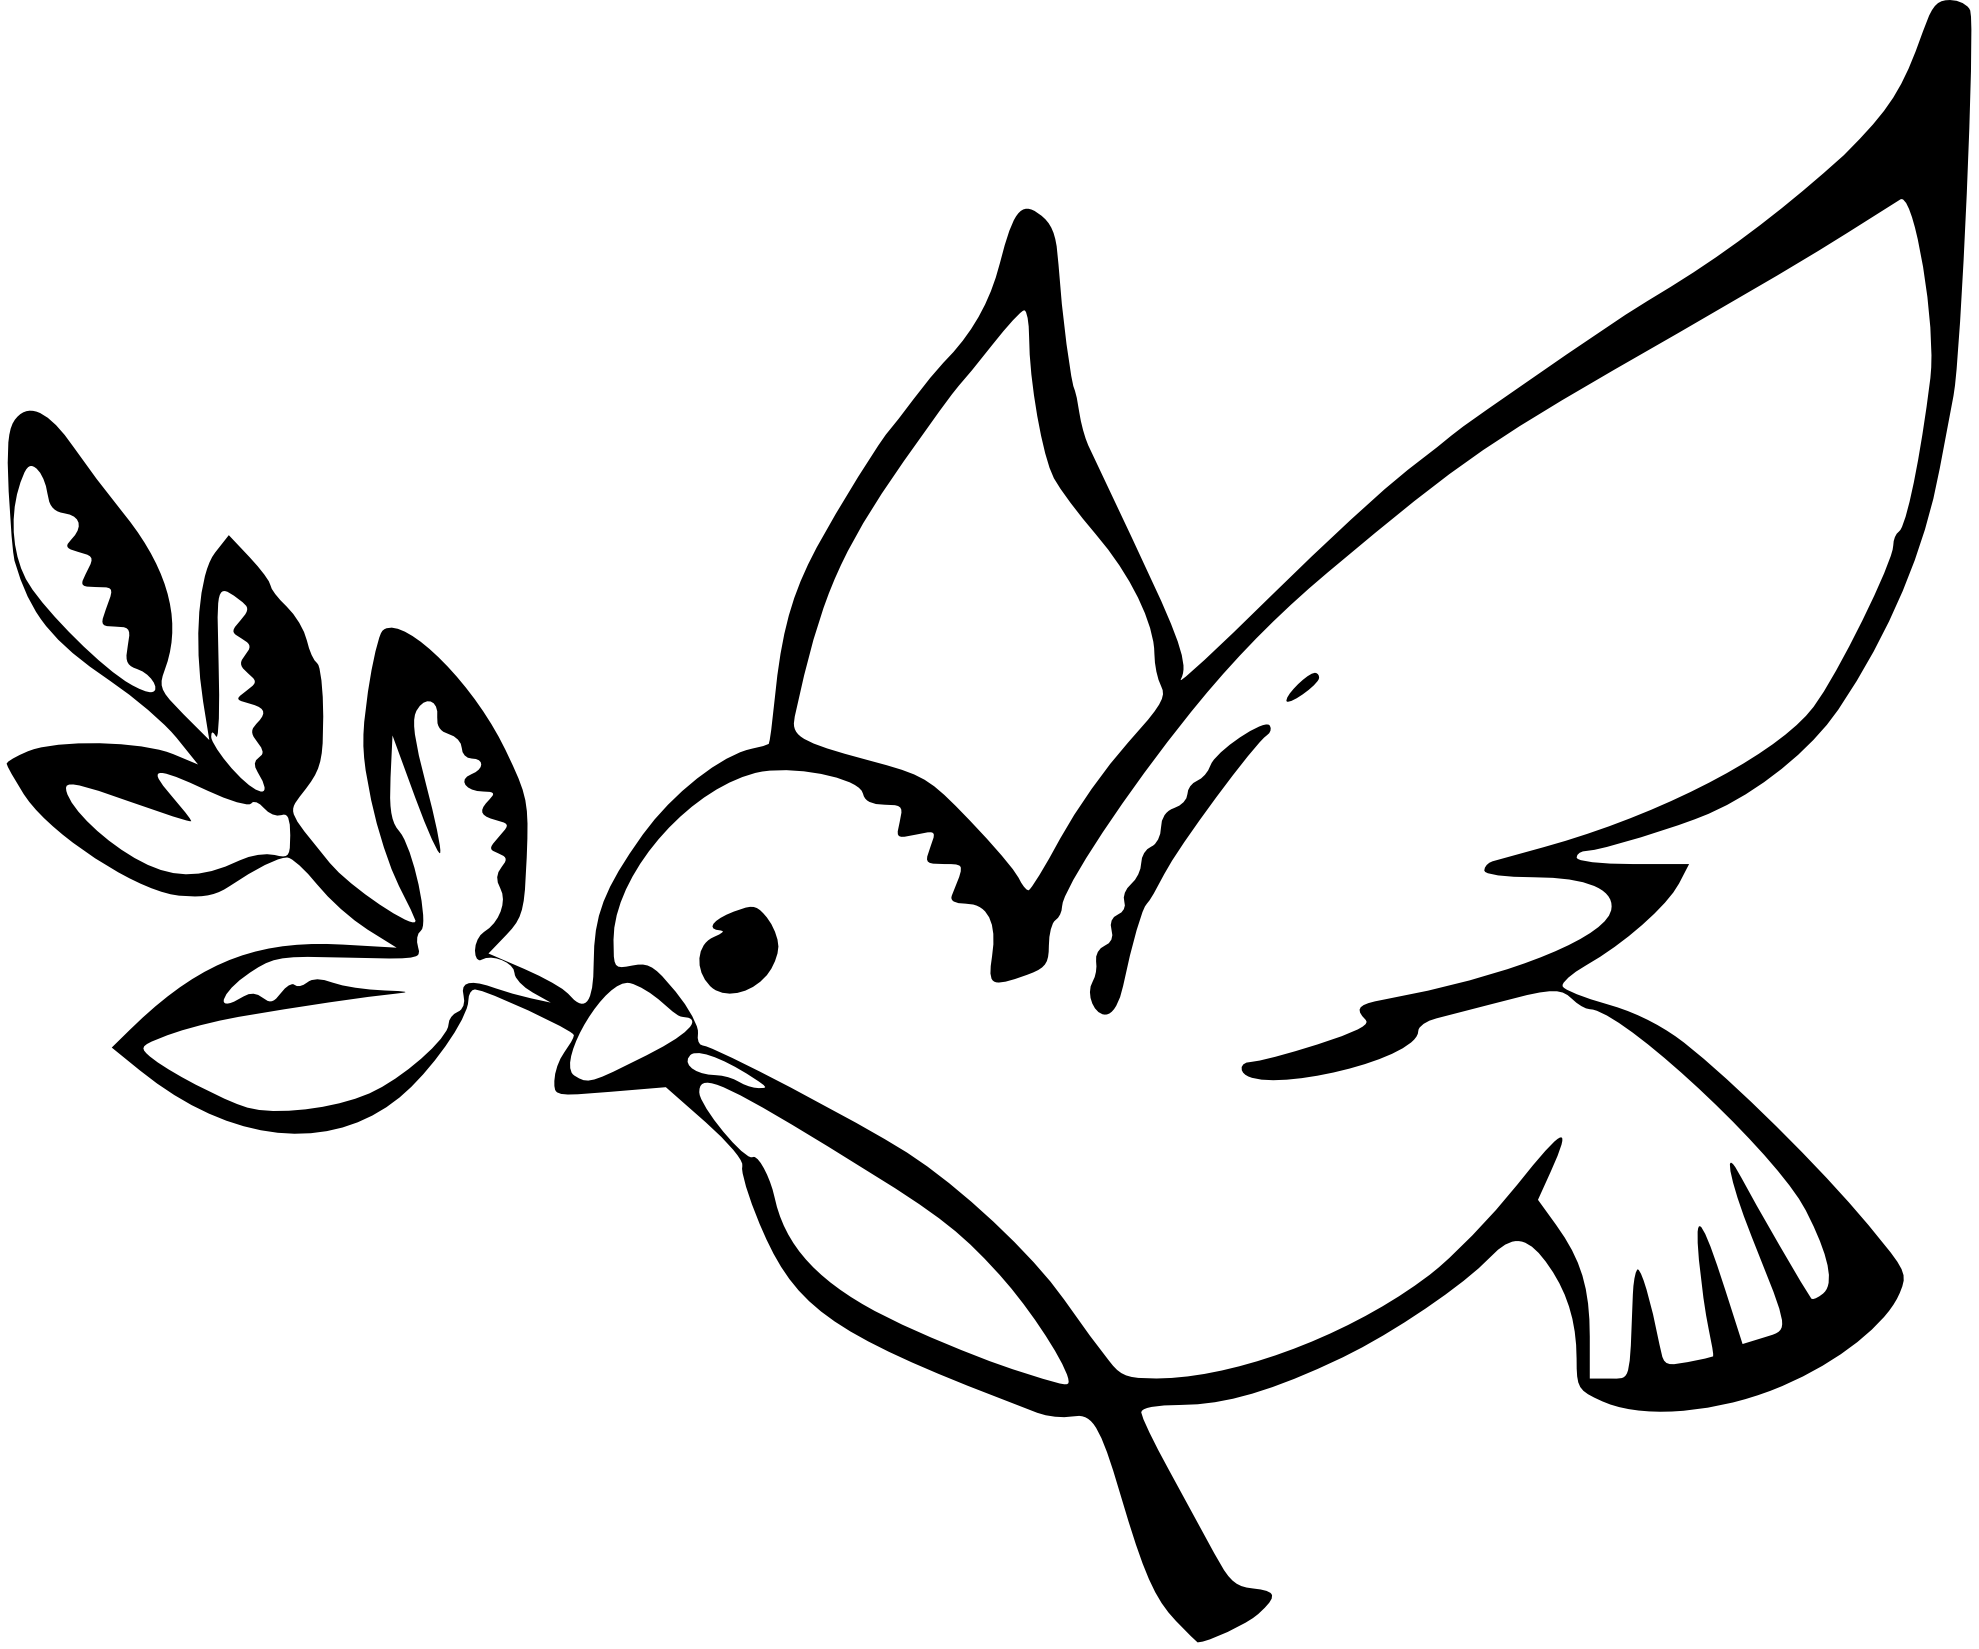 Nativity pencil drawings peace. Dove & cross clipart